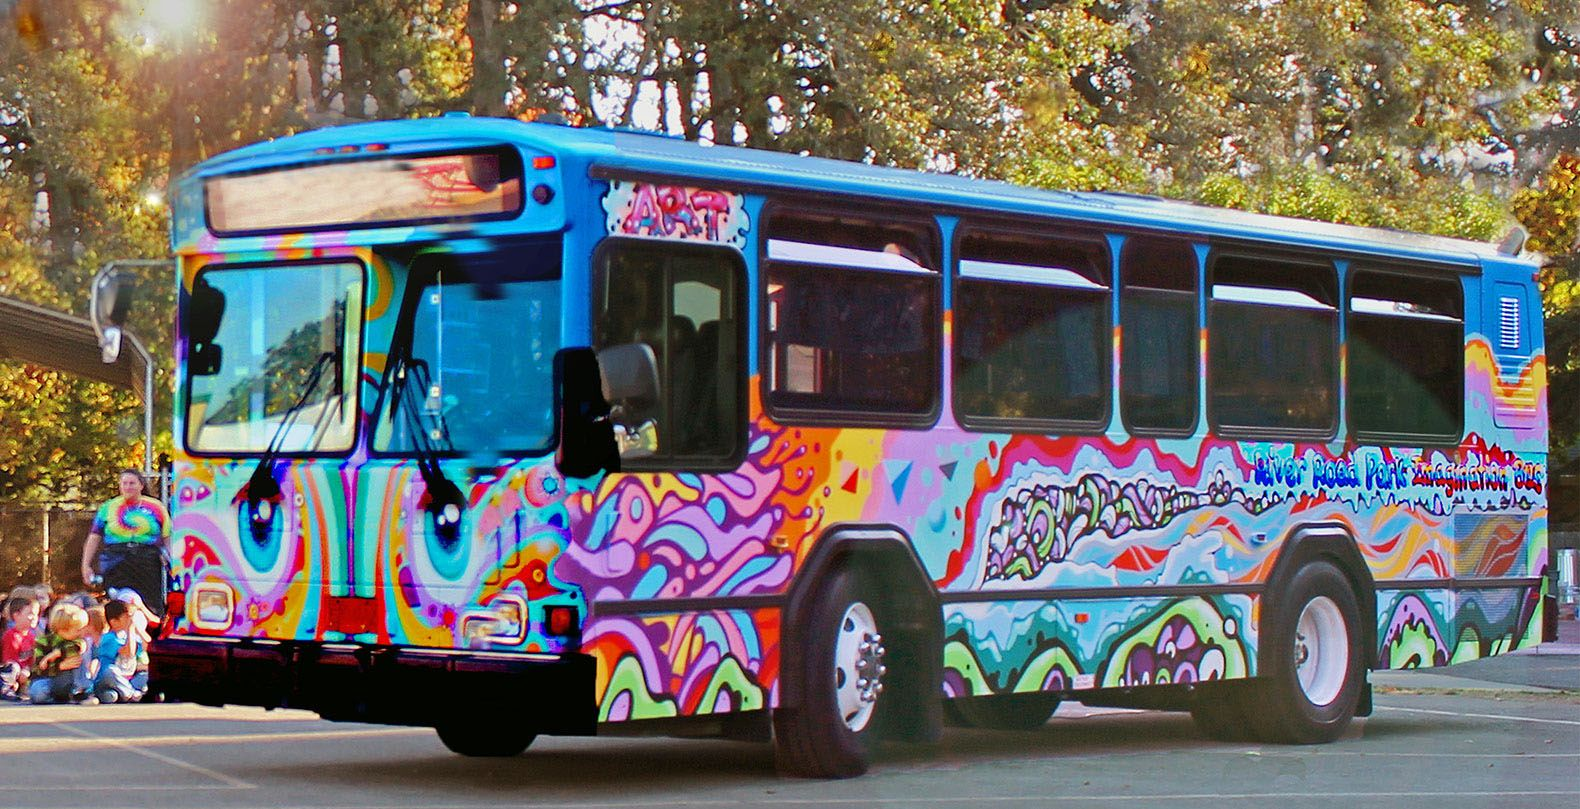 A transit bus turned art studio visits rural districts, low-income housing areas, and parks in and around Eugene to give kids access to art.